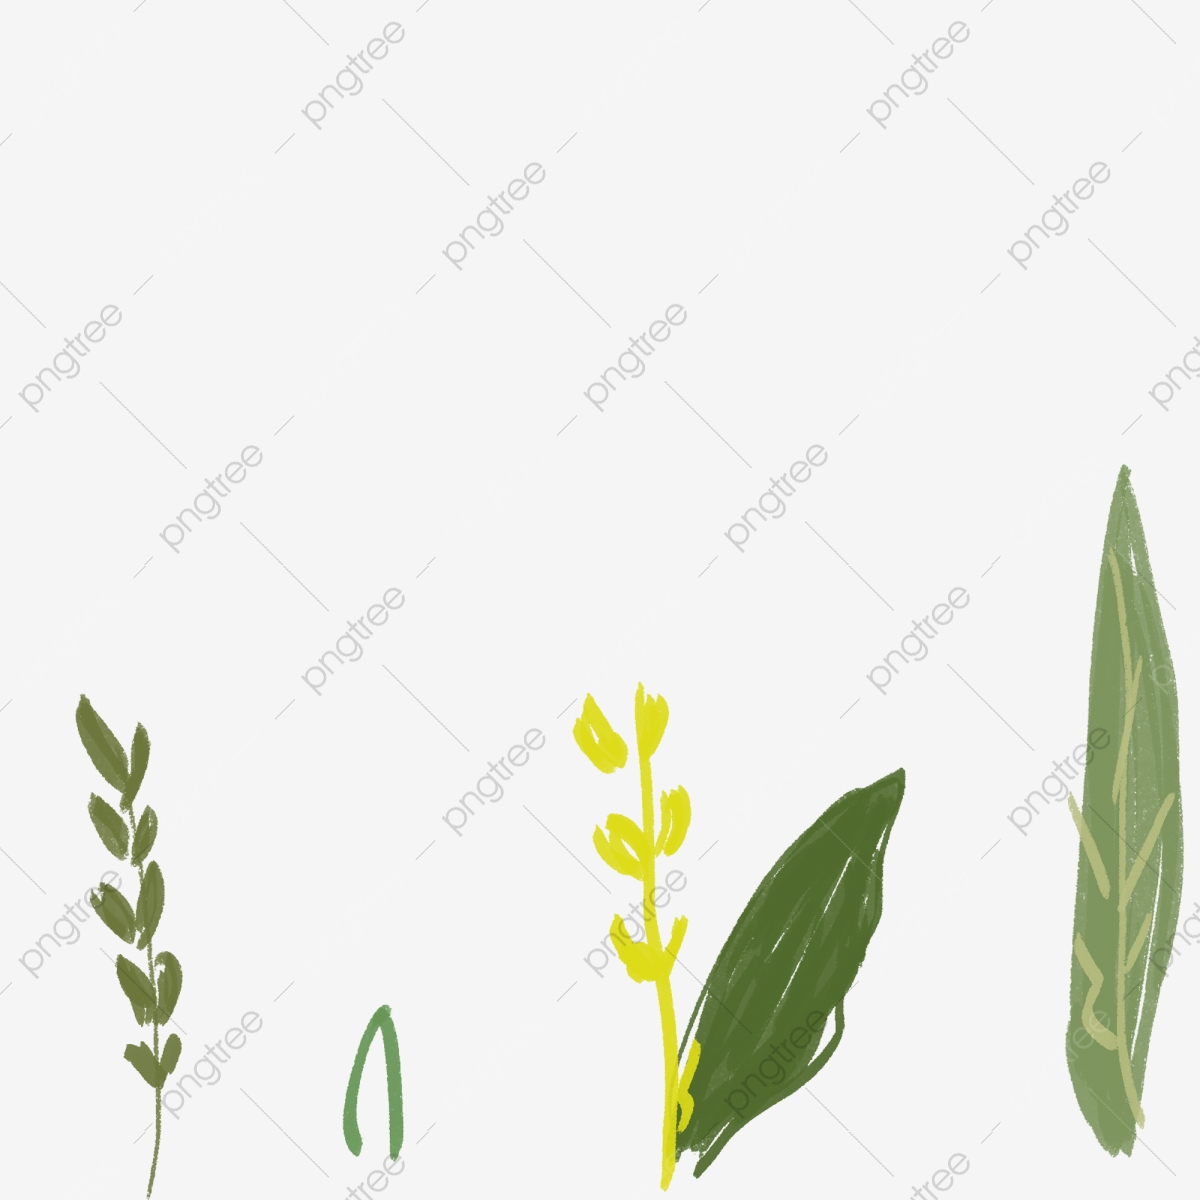 fresh cartoon hand drawn green leaves decoration wheat ears leaves green leaf yellow flower leaf embellishment leaf ornament png transparent clipart image and psd file for free download https pngtree com freepng fresh cartoon hand drawn green leaves decoration wheat ears leaves green leaf 3979953 html